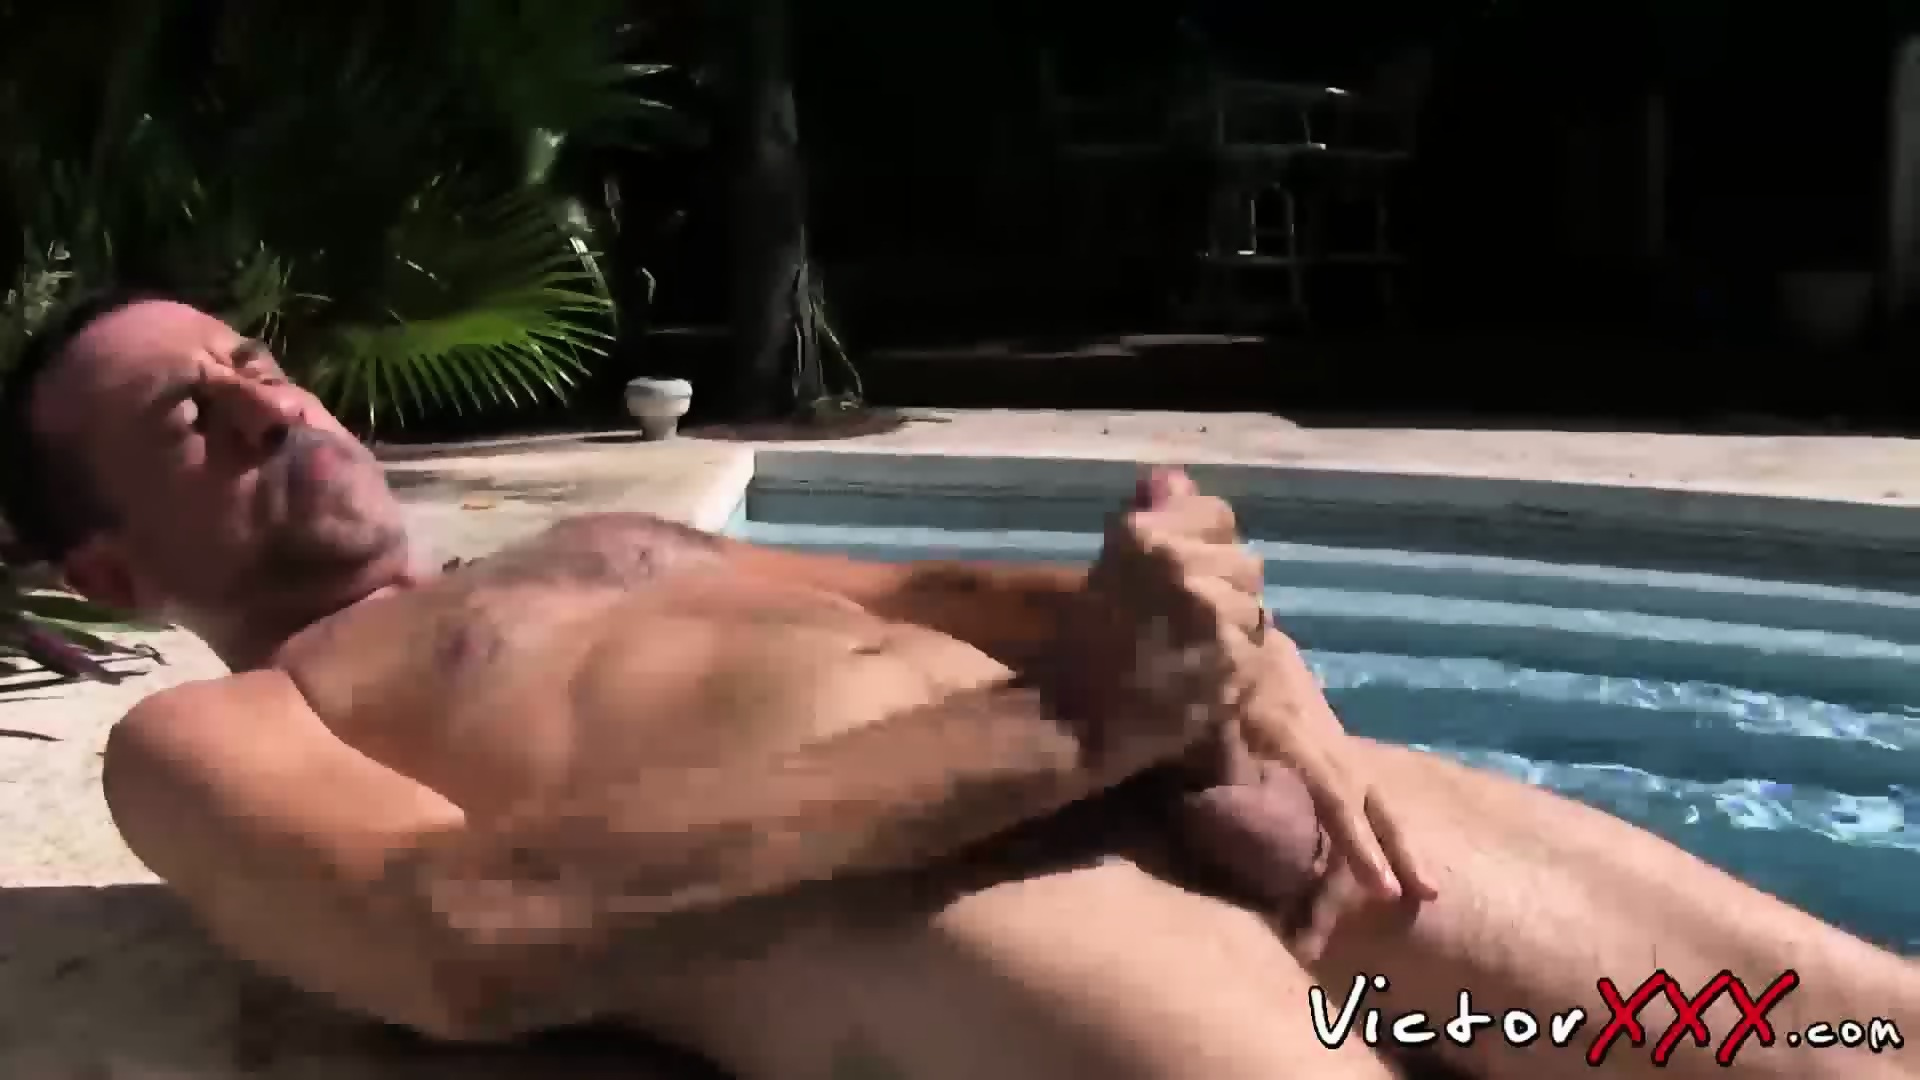 Porno of over 40 year olds